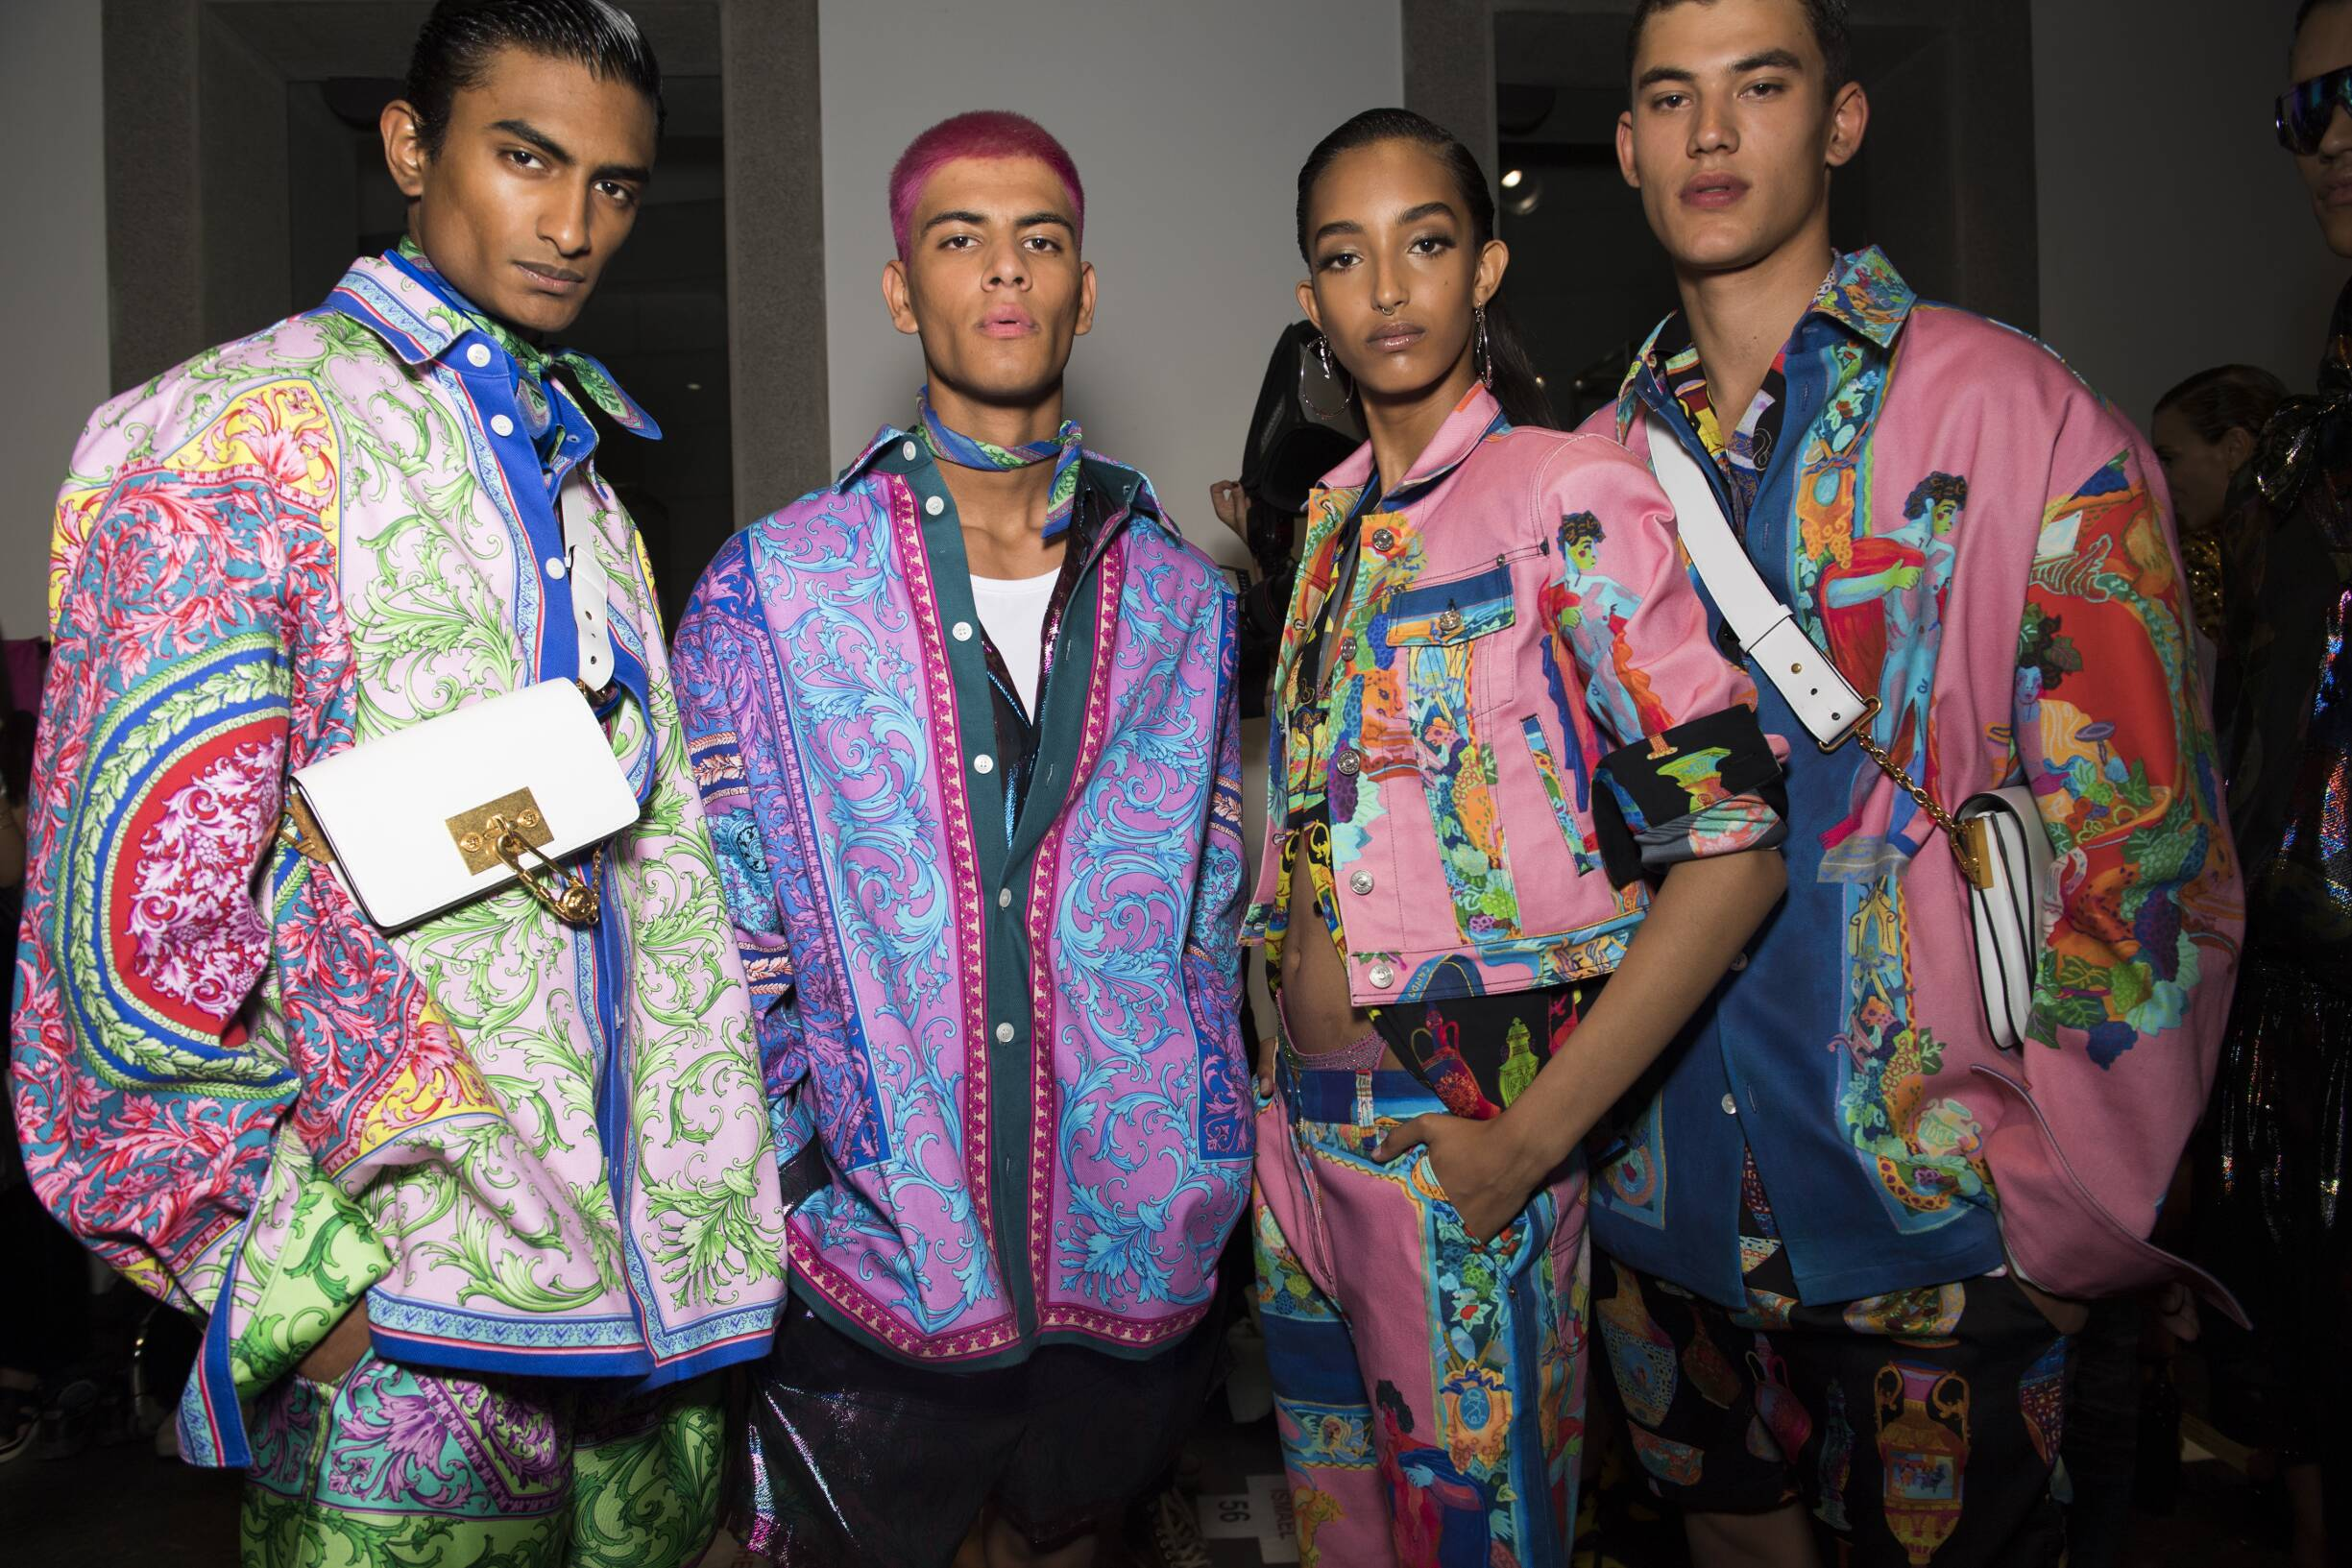 Backstage Versace Models 2020